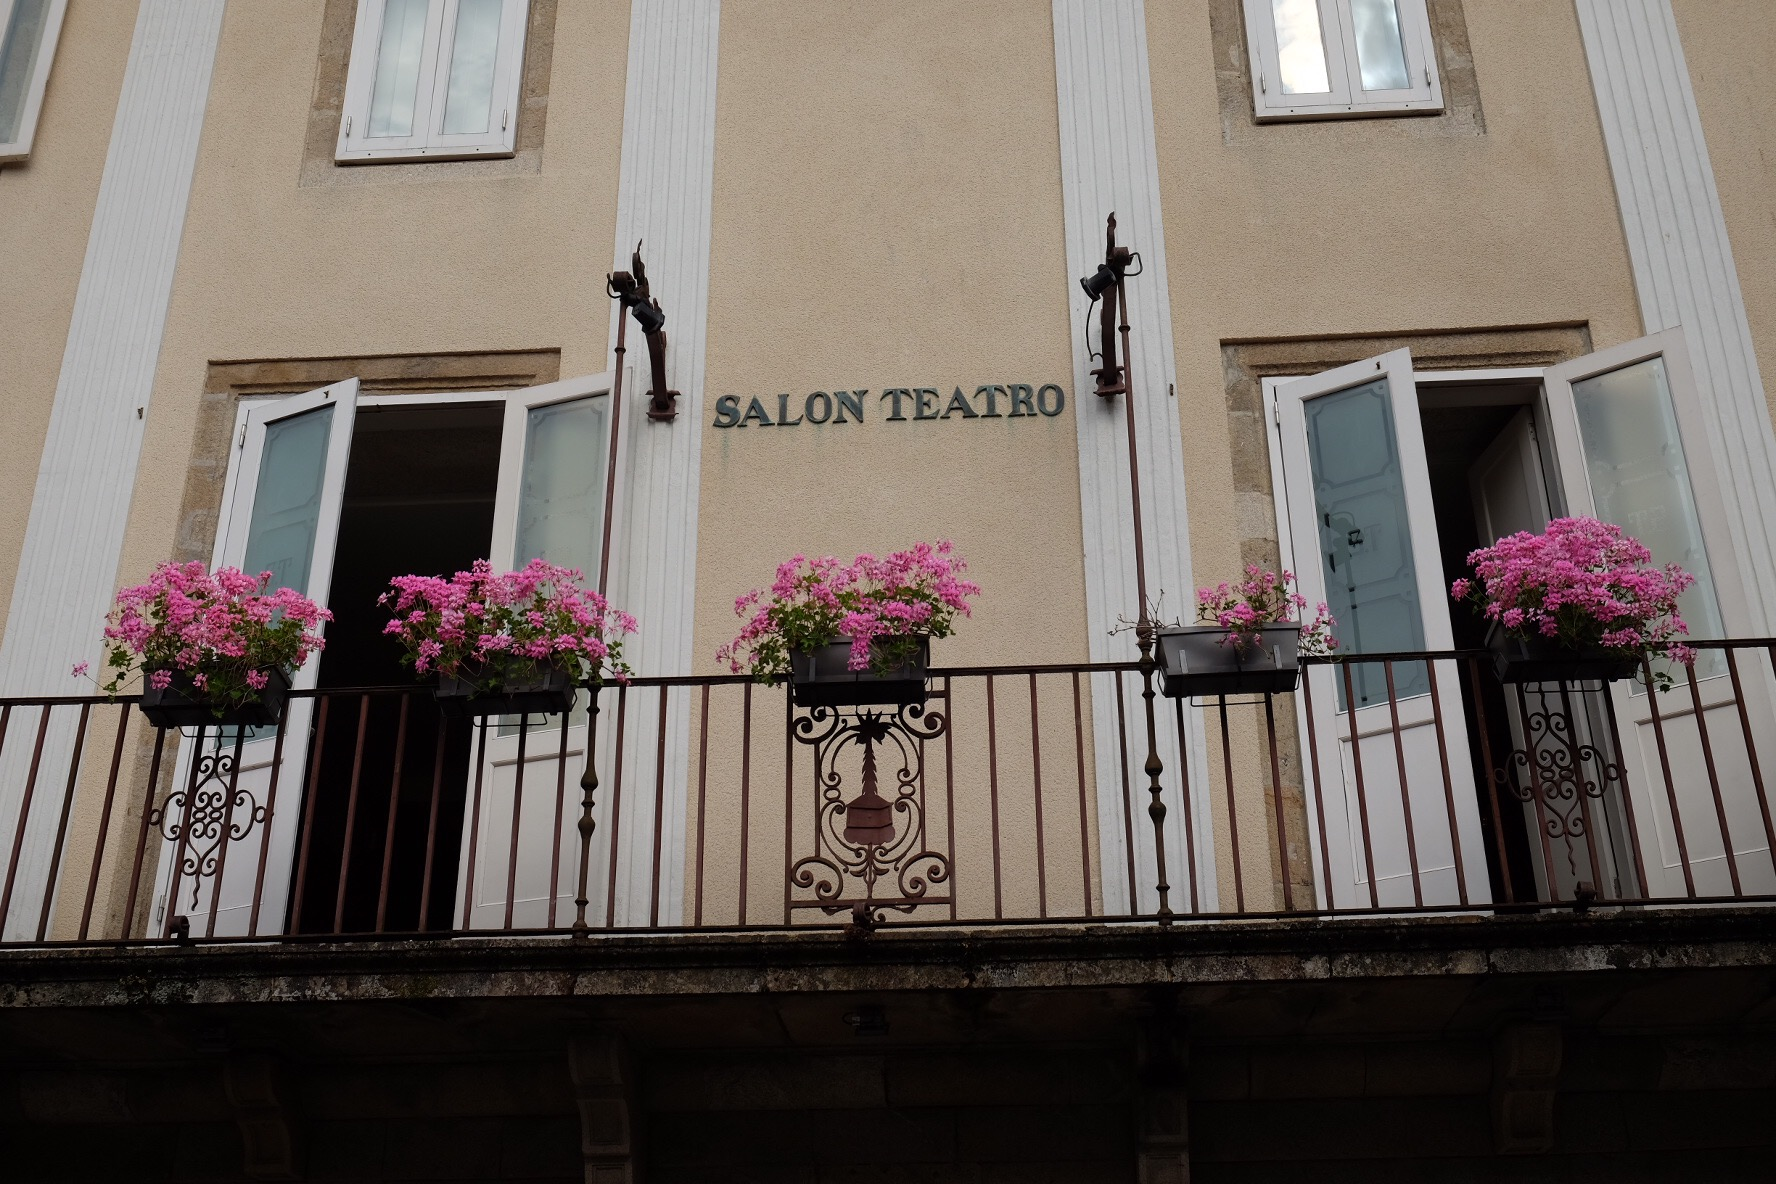 Salon Teatro Santiago The Joys Of Santiago The People Observations